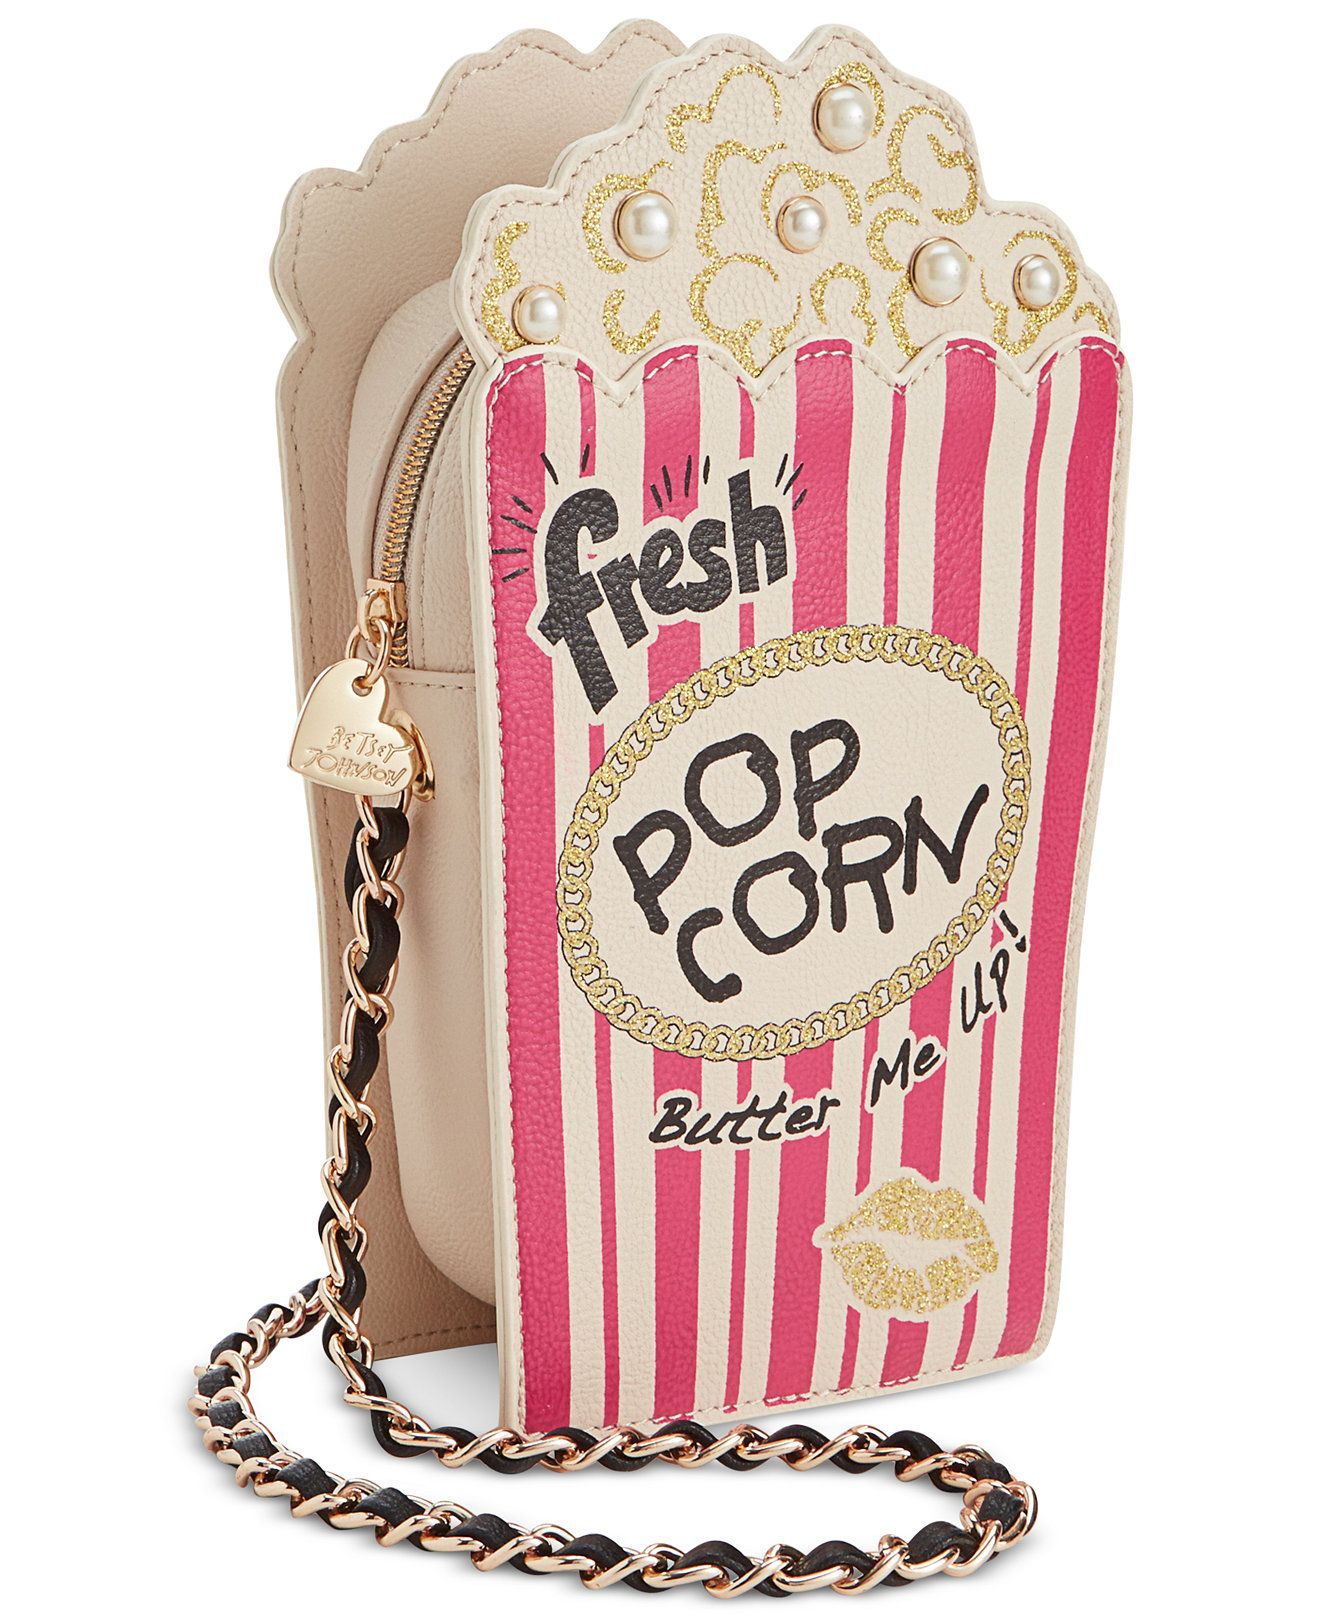 Macys baby hair accessories - Betsey Johnson Popcorn Crossbody All Handbags Handbags Accessories Macy S